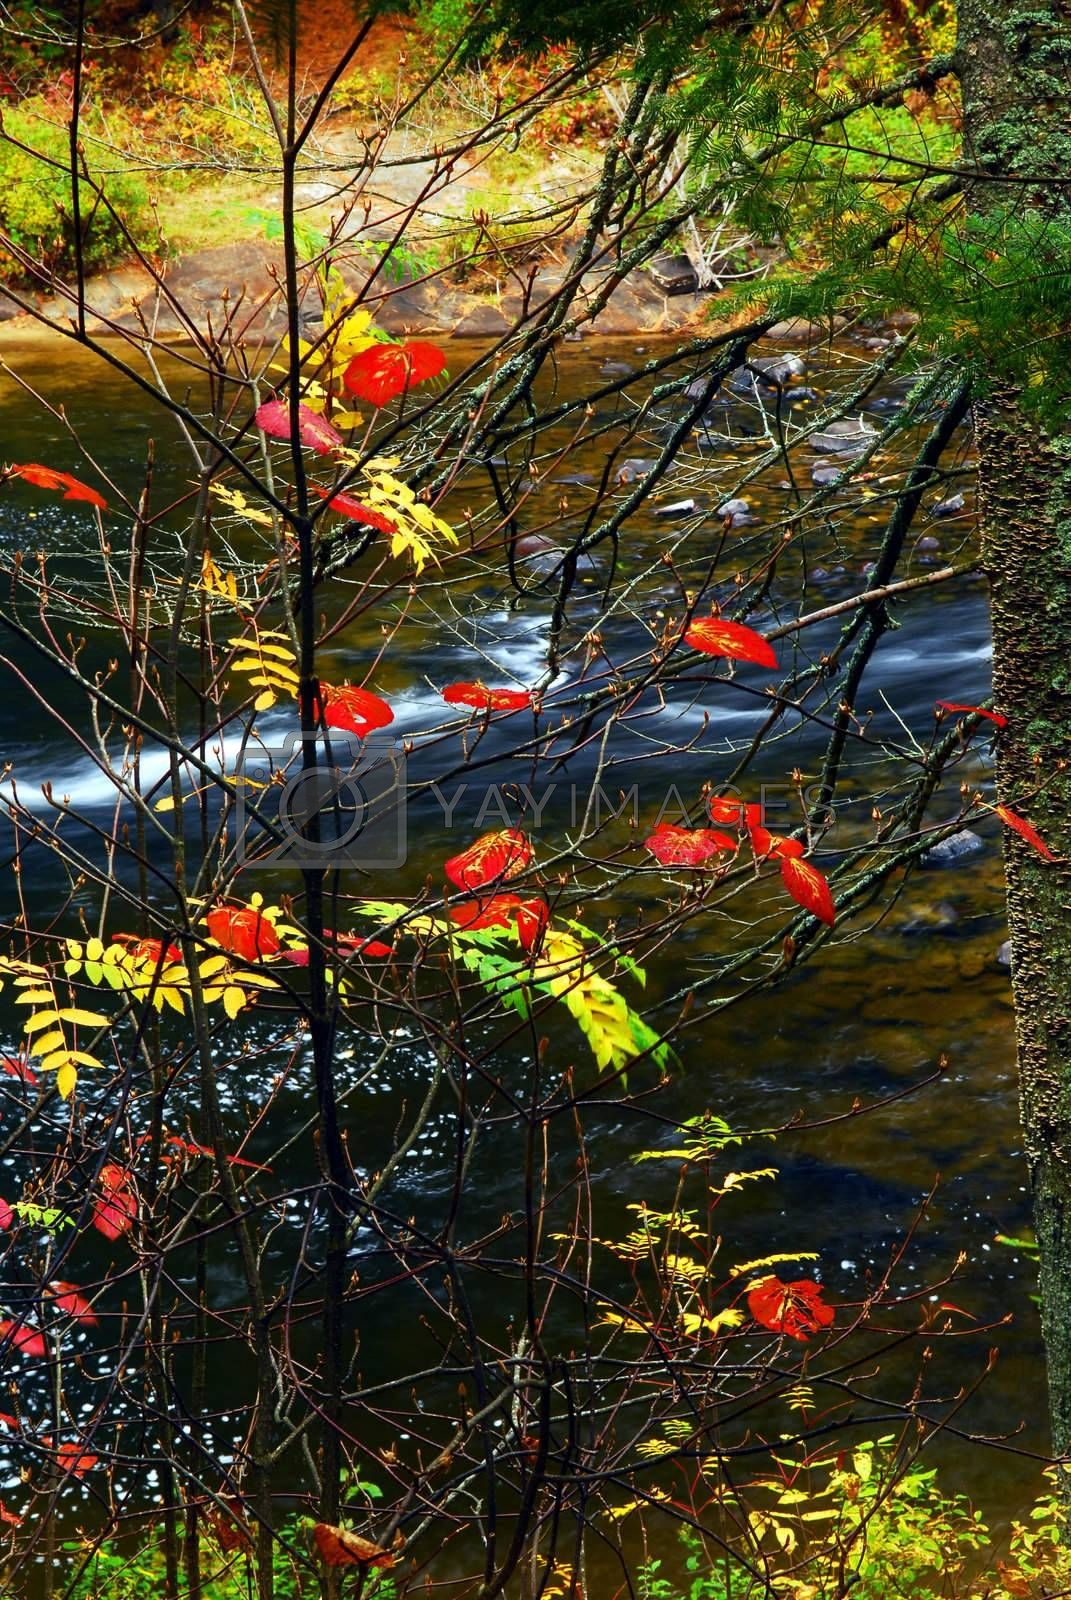 Fall forest with river in the background. Algonquin provincial park, Canada.